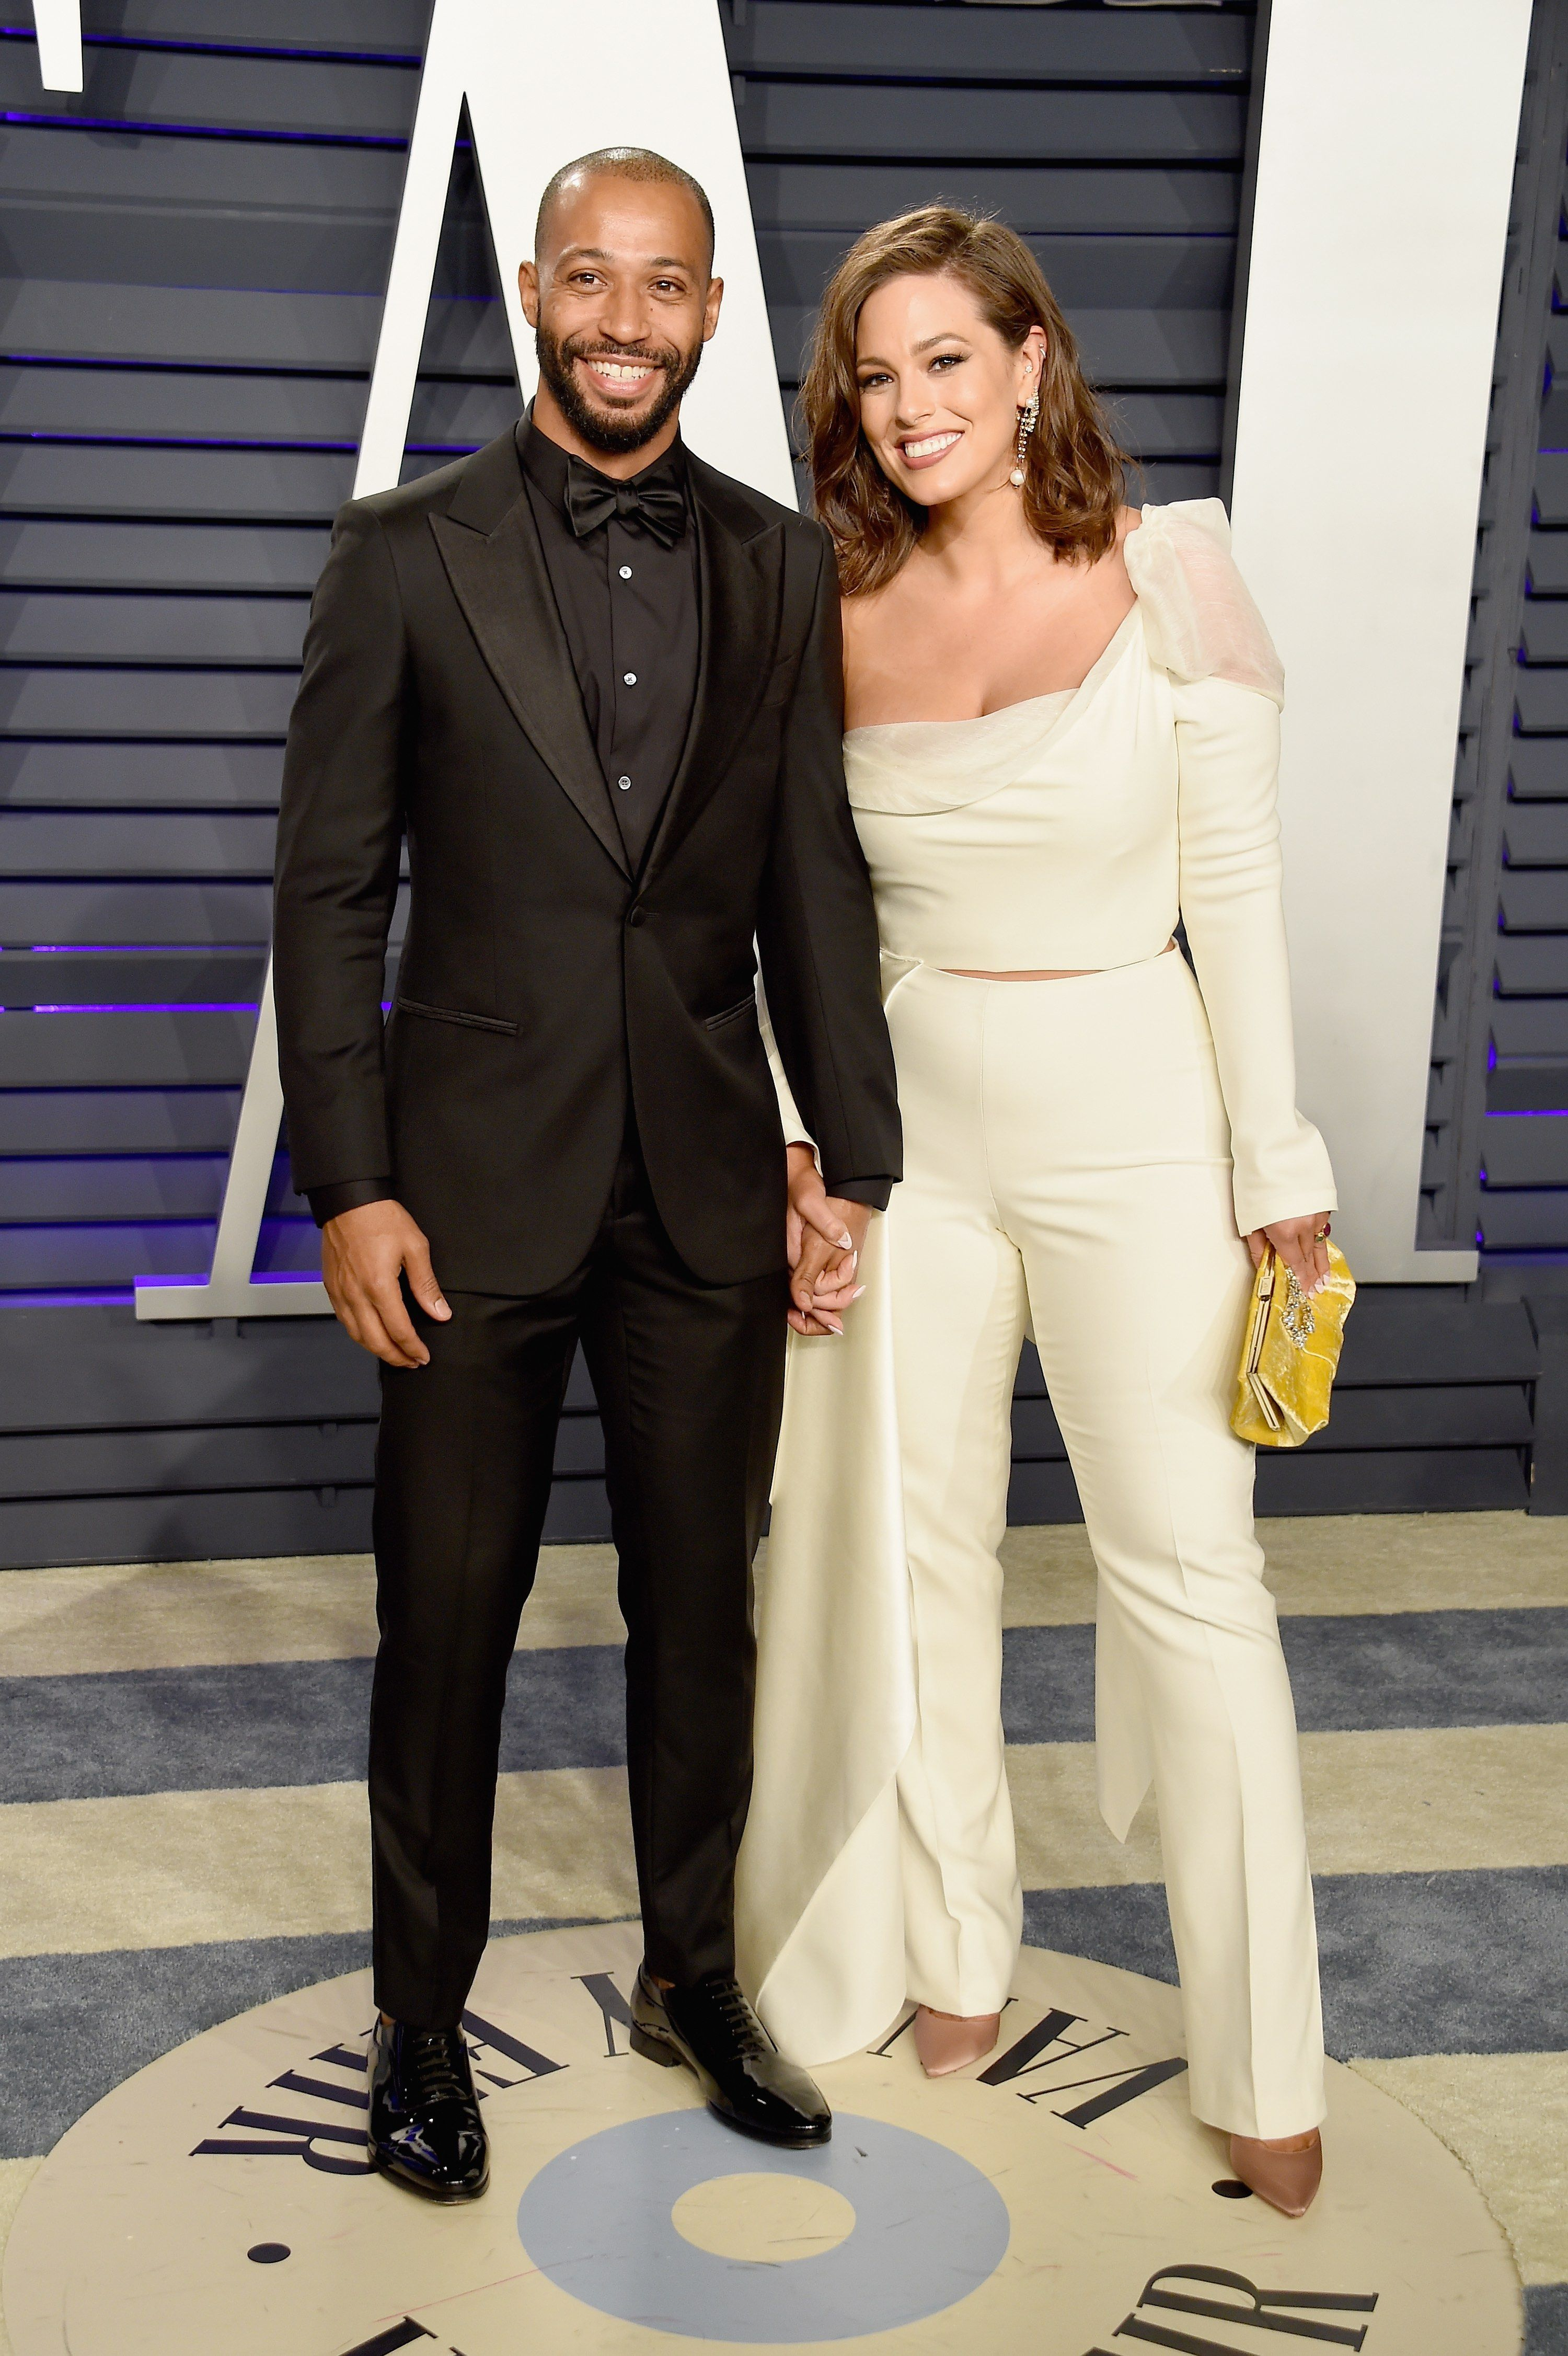 Ashley Graham has welcomed a baby boy with husband Justin Ervin